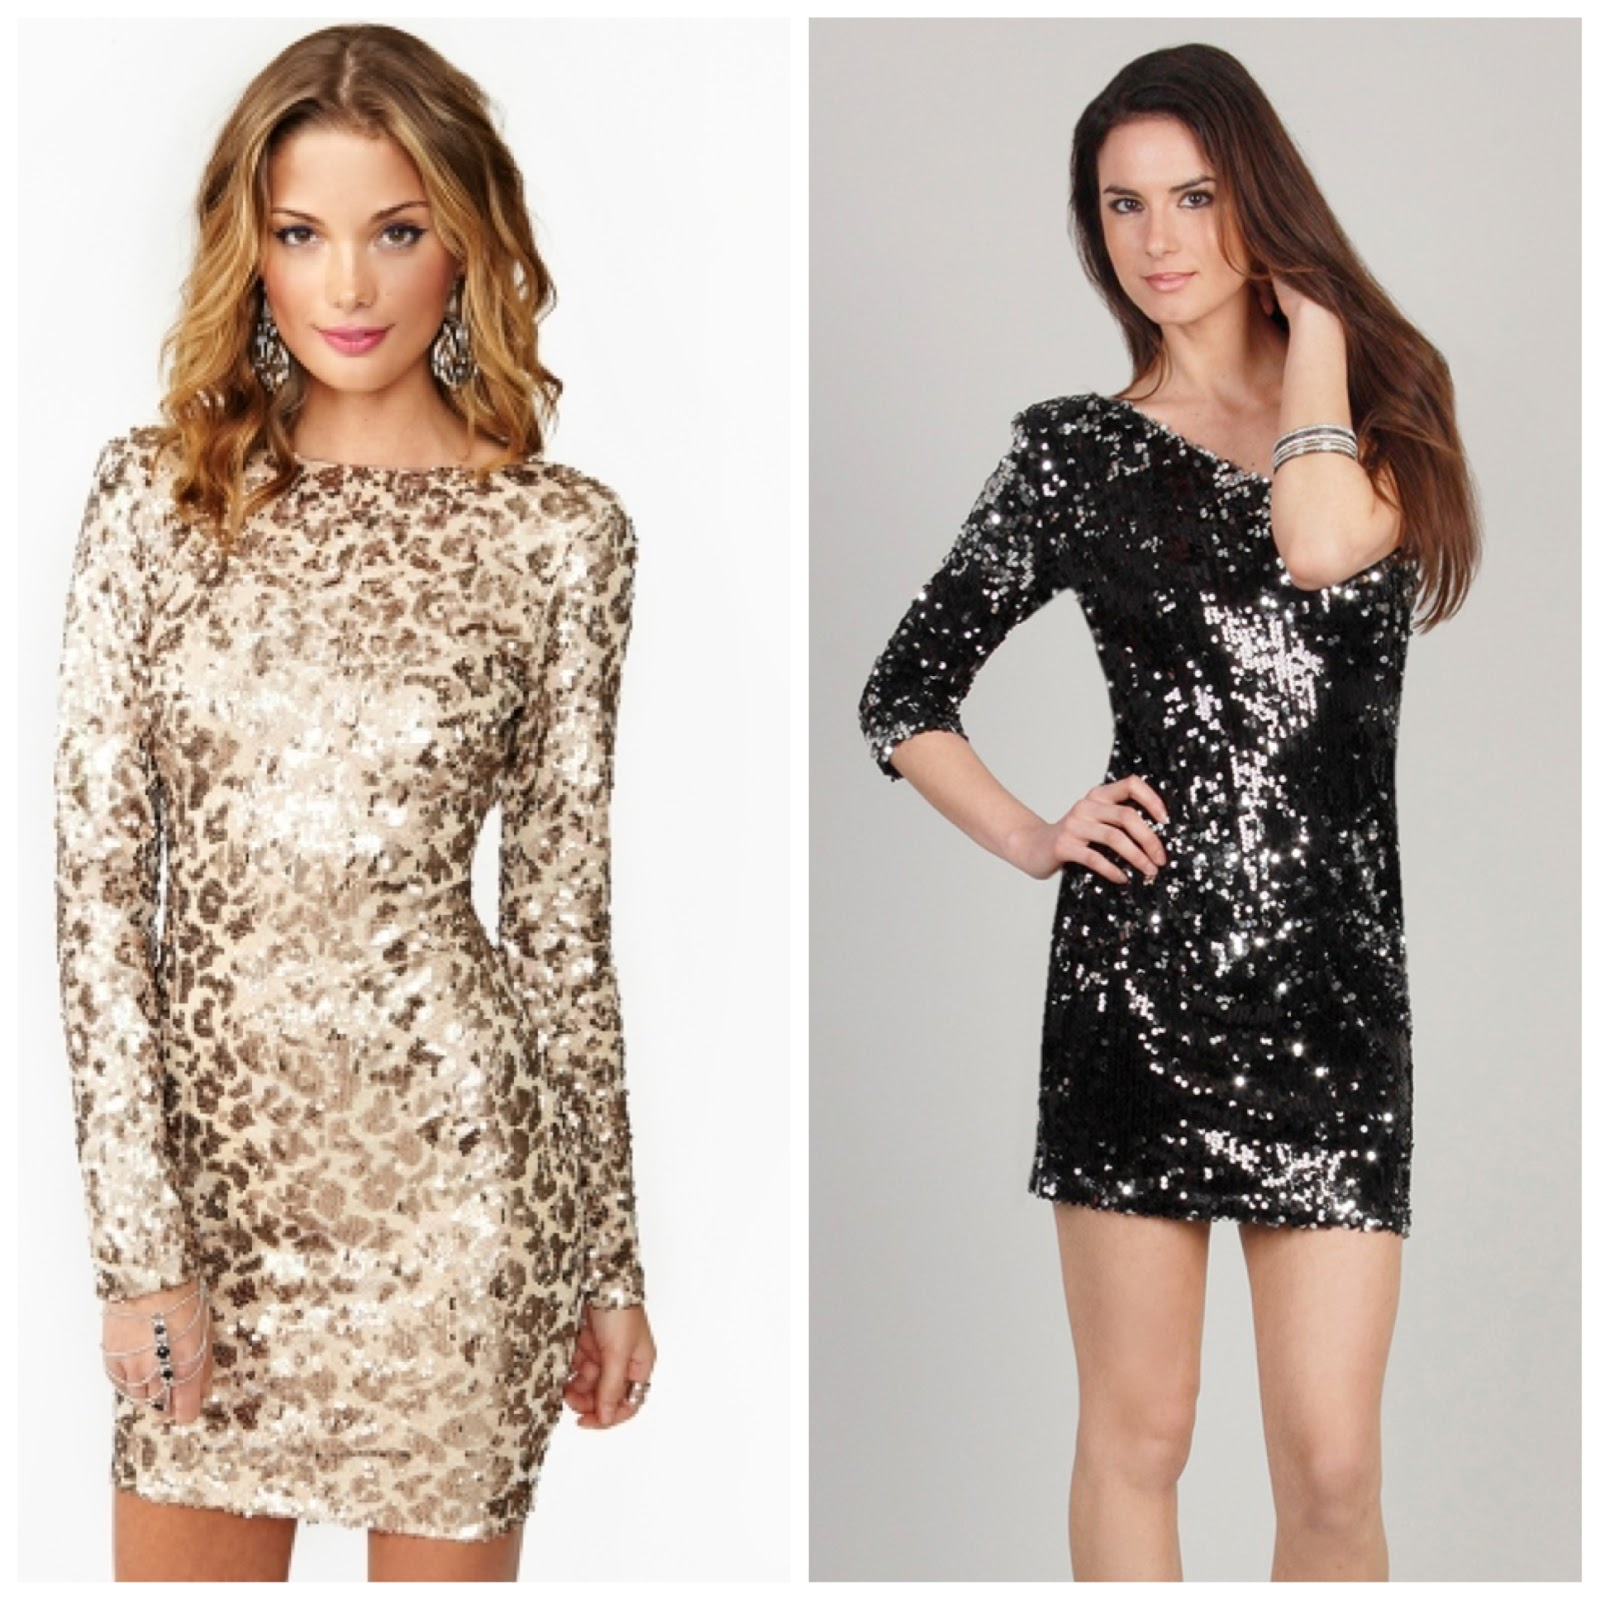 d28dcb011d34c Holiday Party Dresses: Sequin Edition | Tall Freckled Fashionista